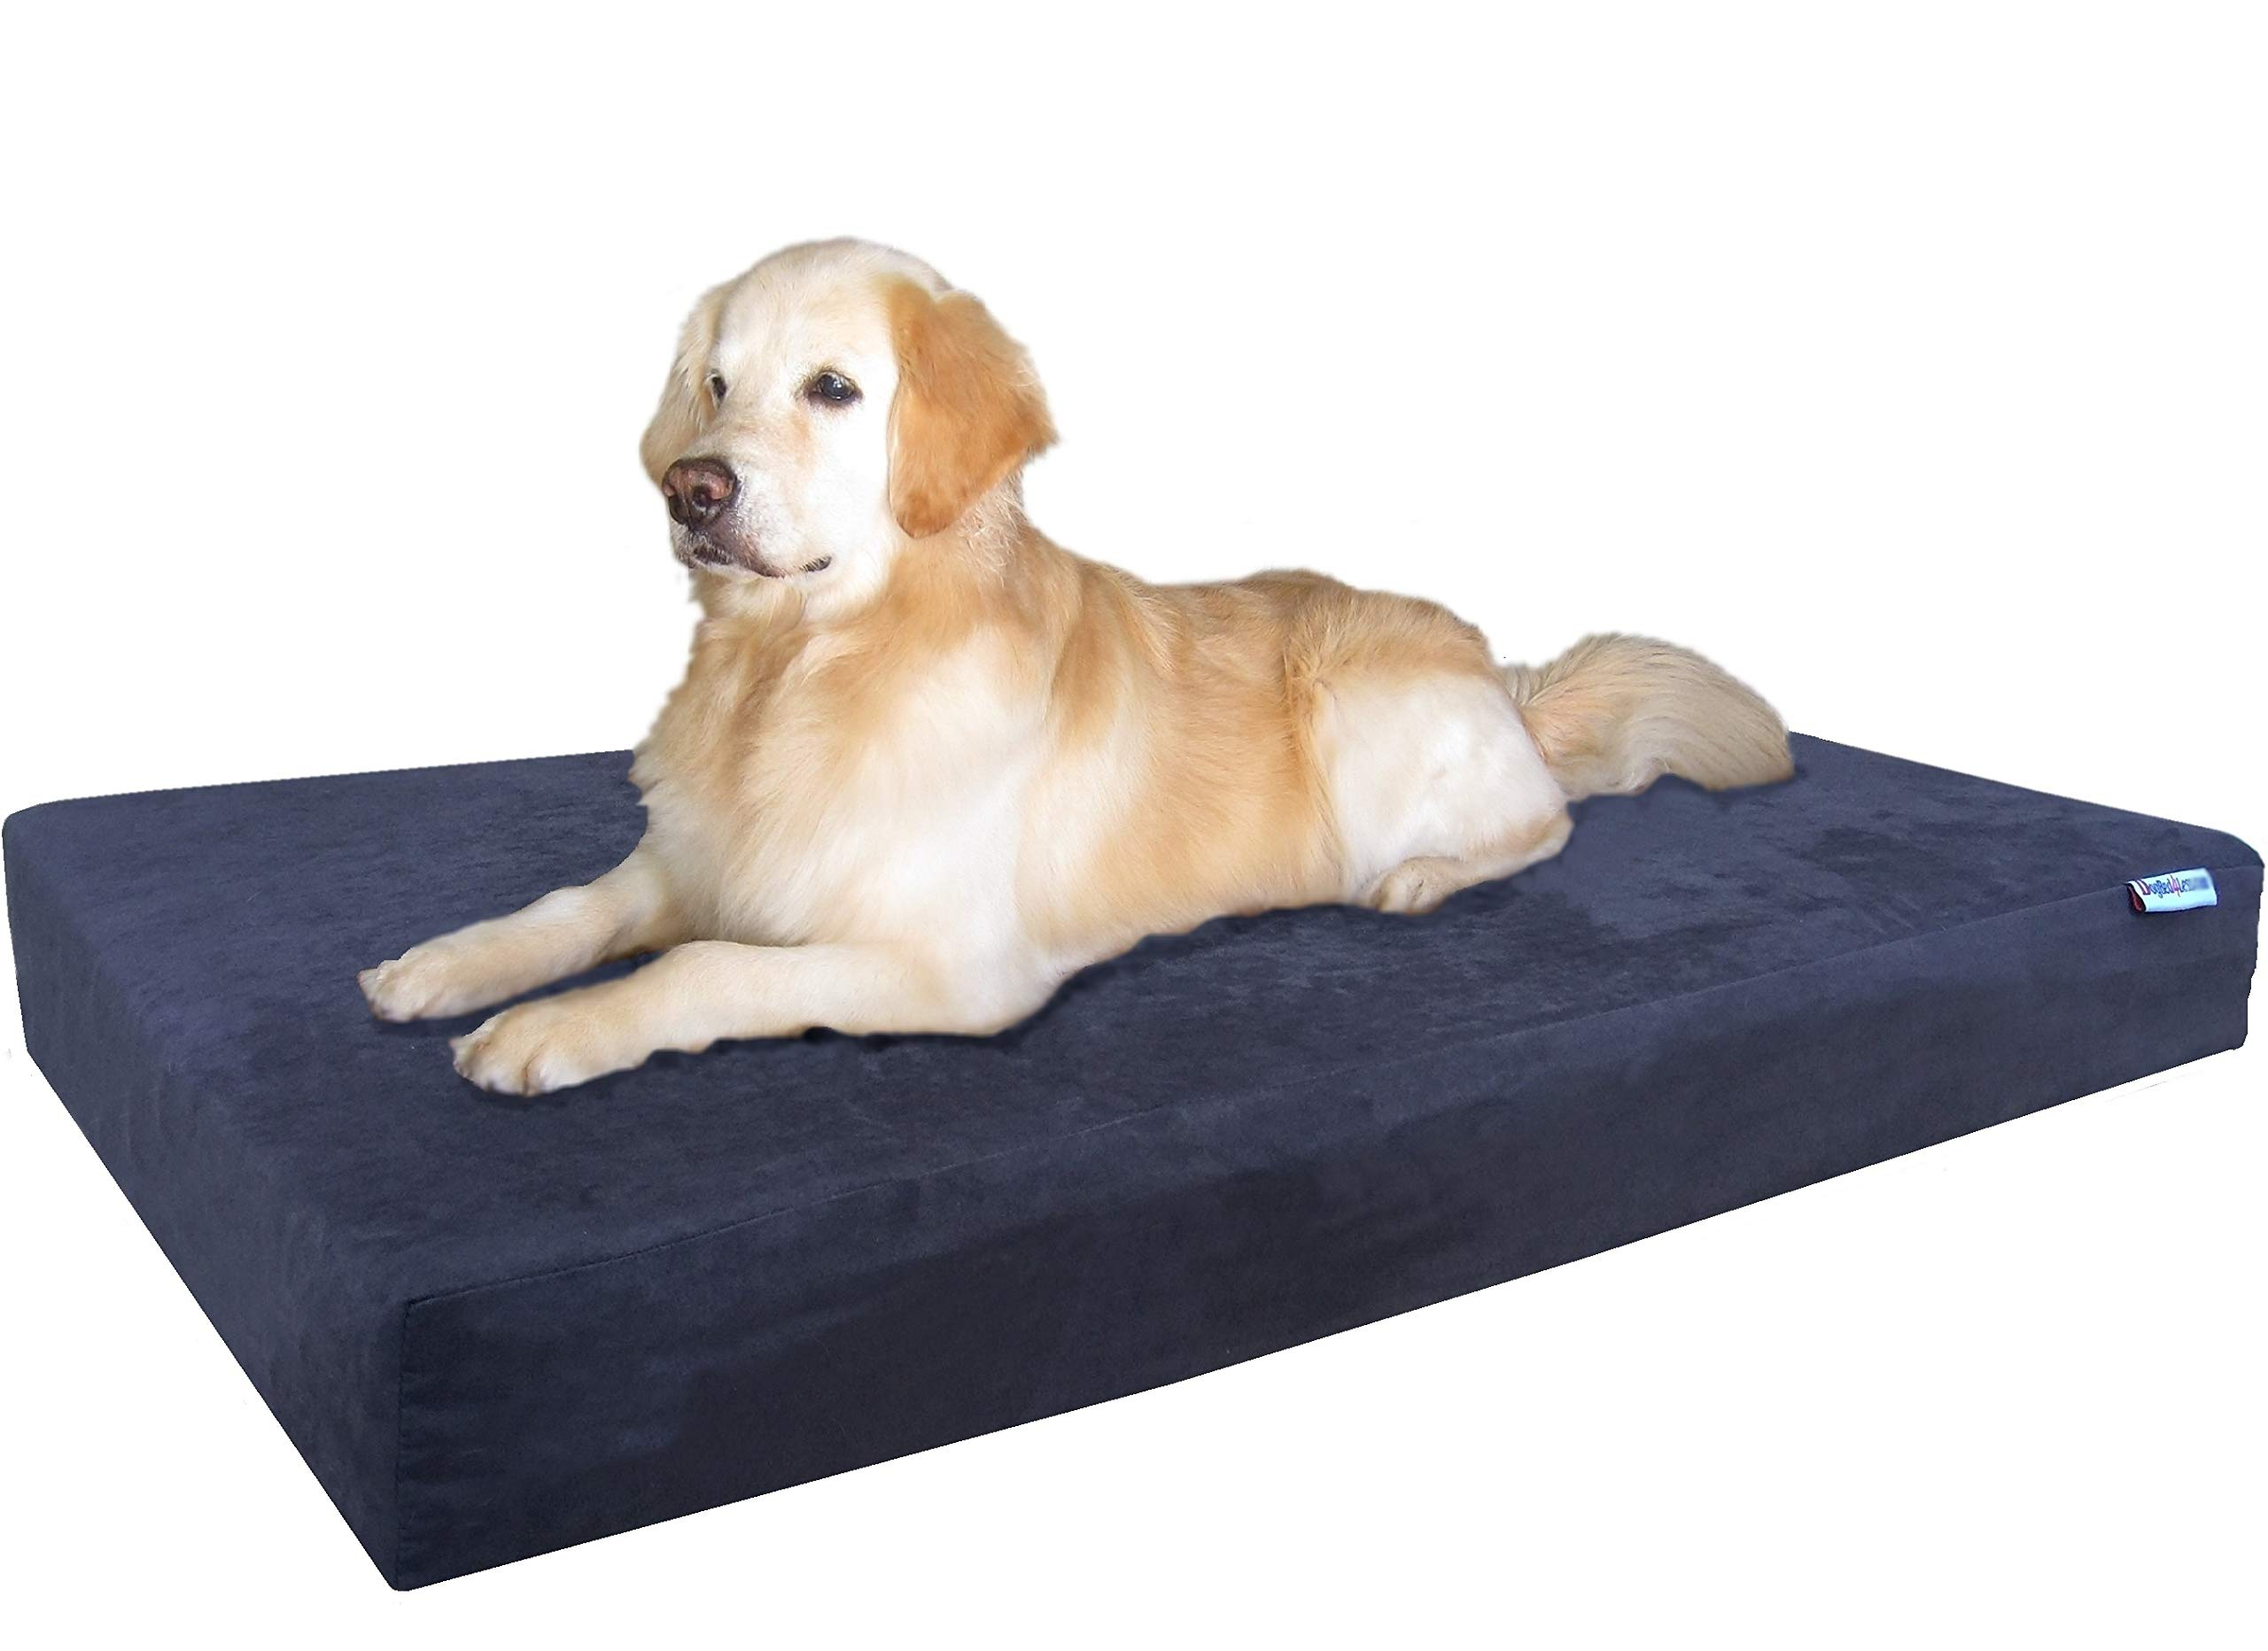 Dogbed4less Jumbo Extra Large Gel Infused Memory Foam Dog Bed with Microsuede Cover and Waterproof Liner, 55X37X8 Inches, Espresso